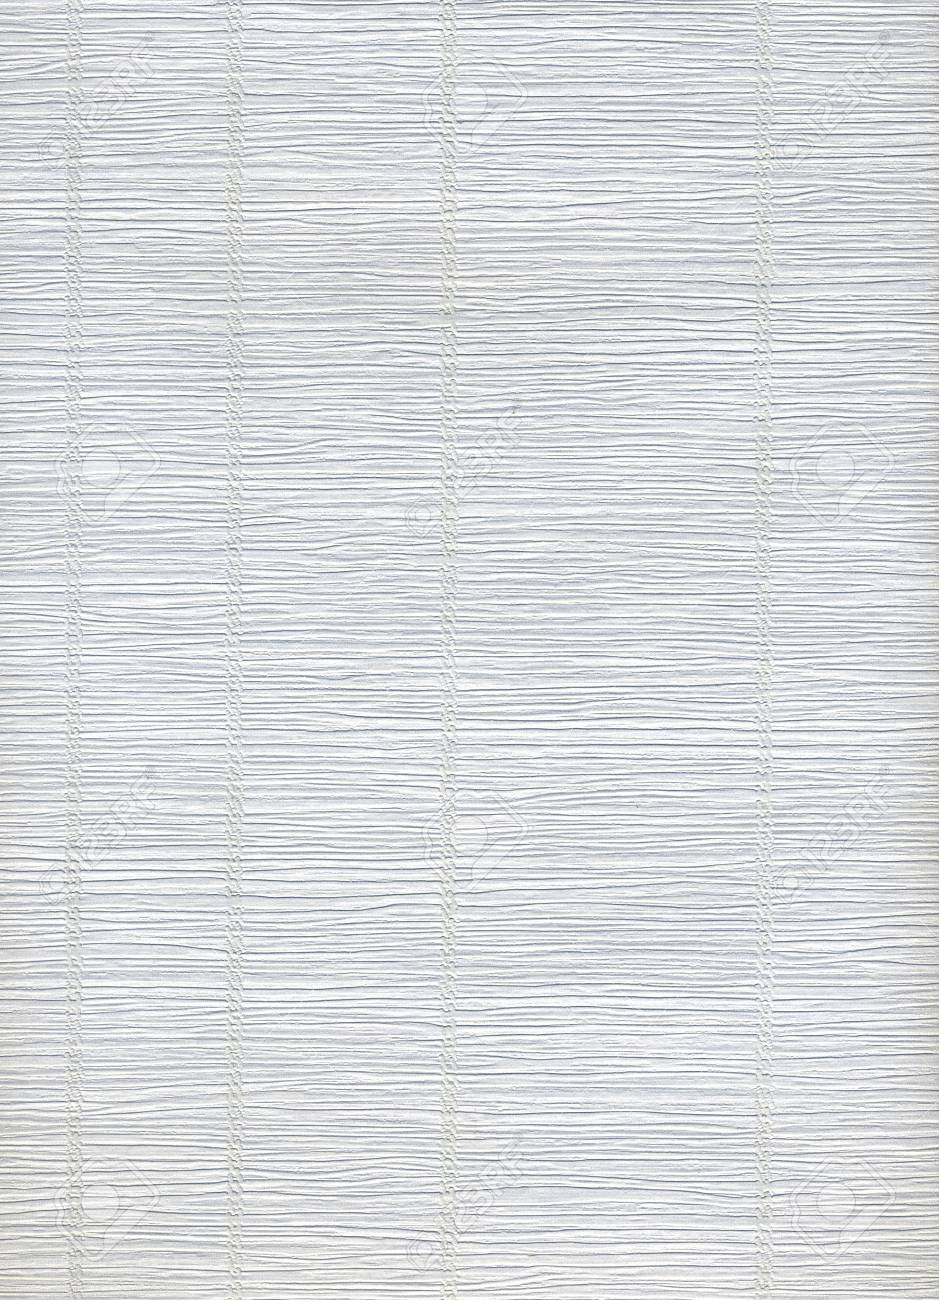 Scanned paper useful as texture or background